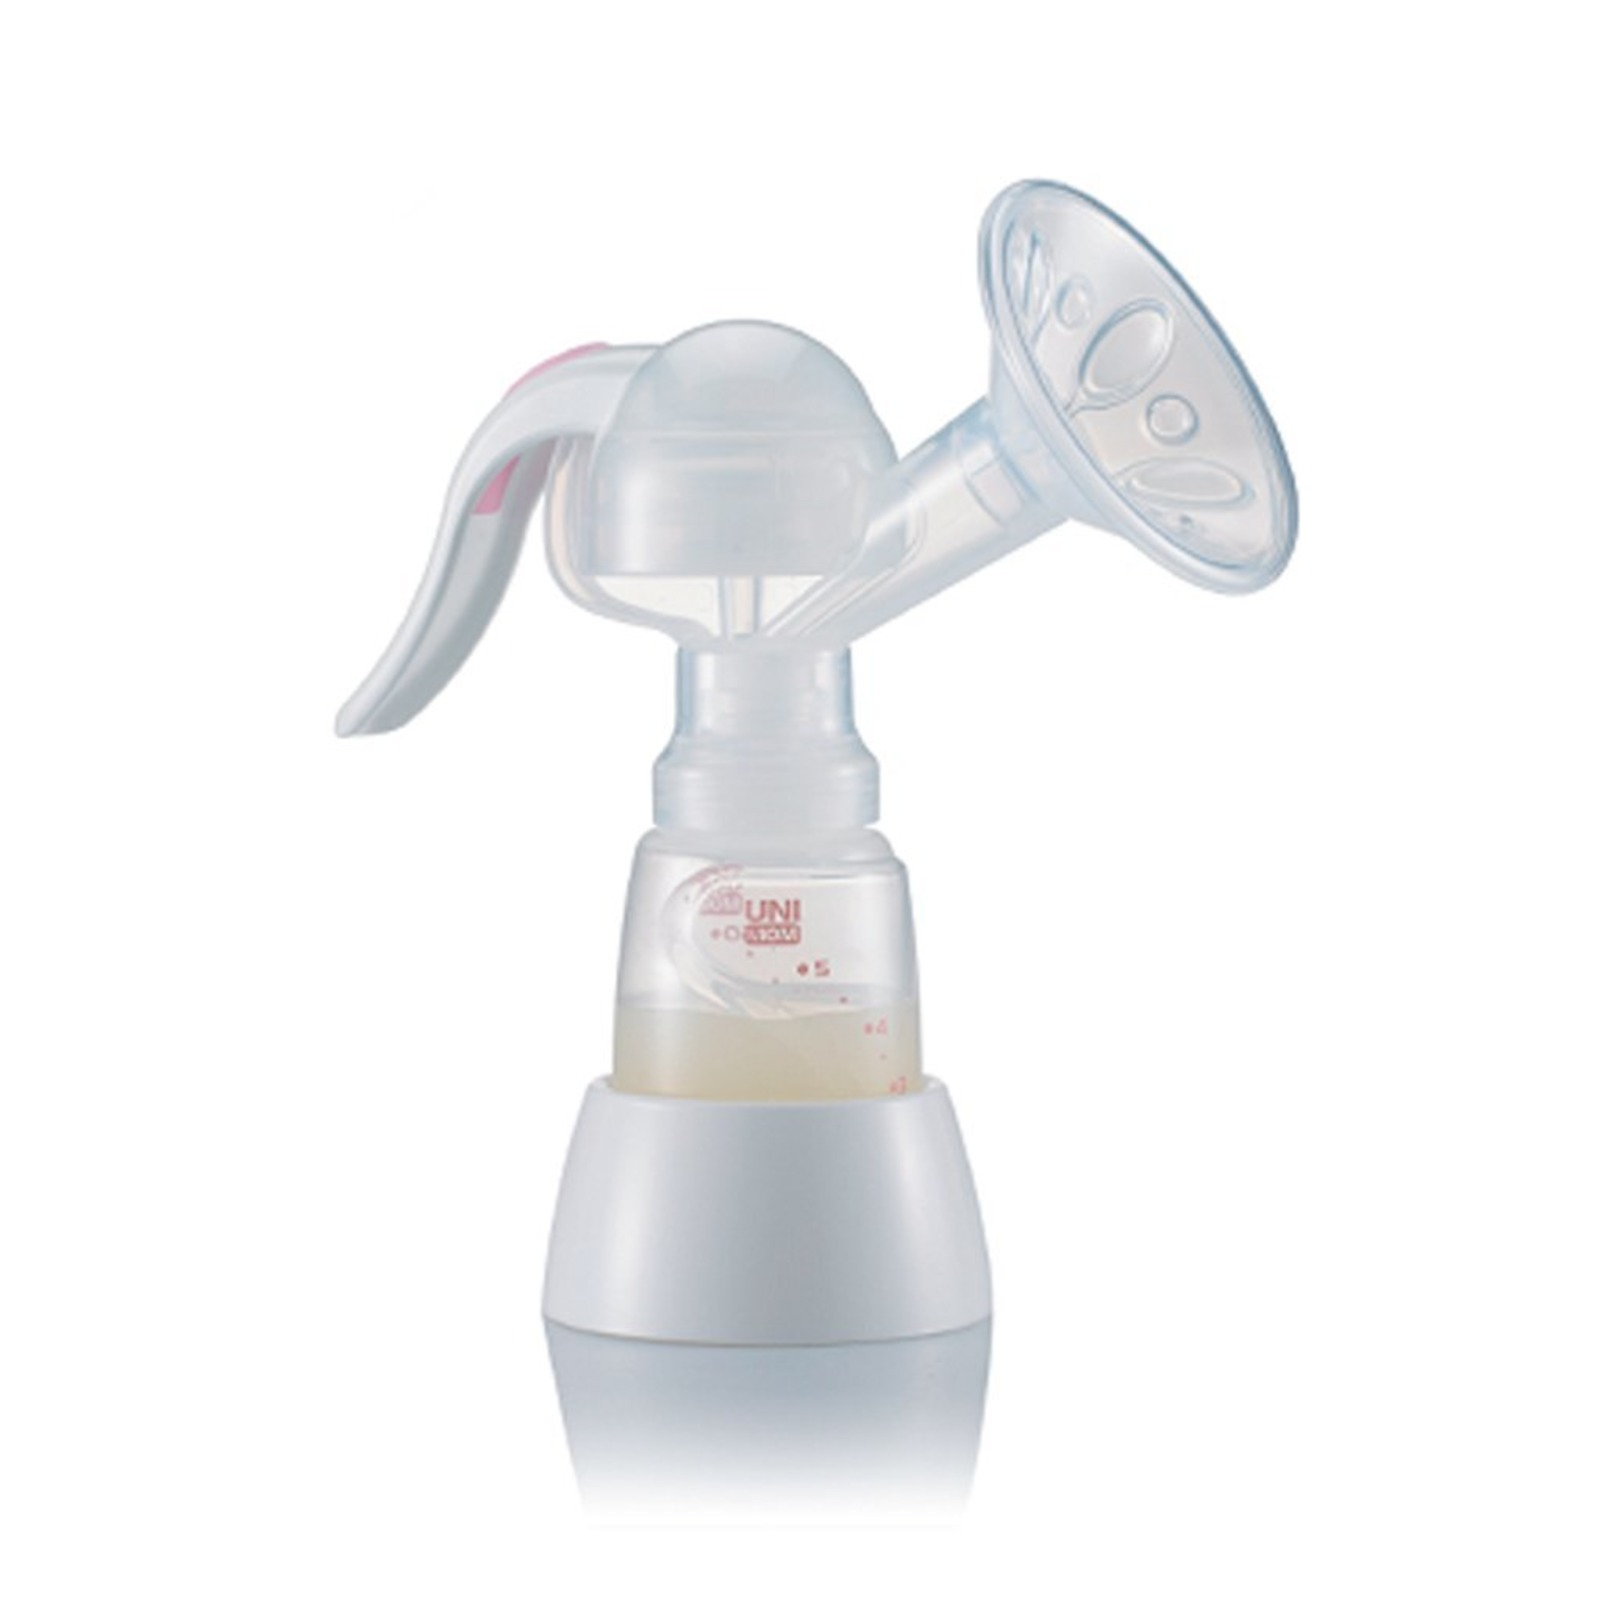 Unimom Single Manual Breast Pump Mezzo